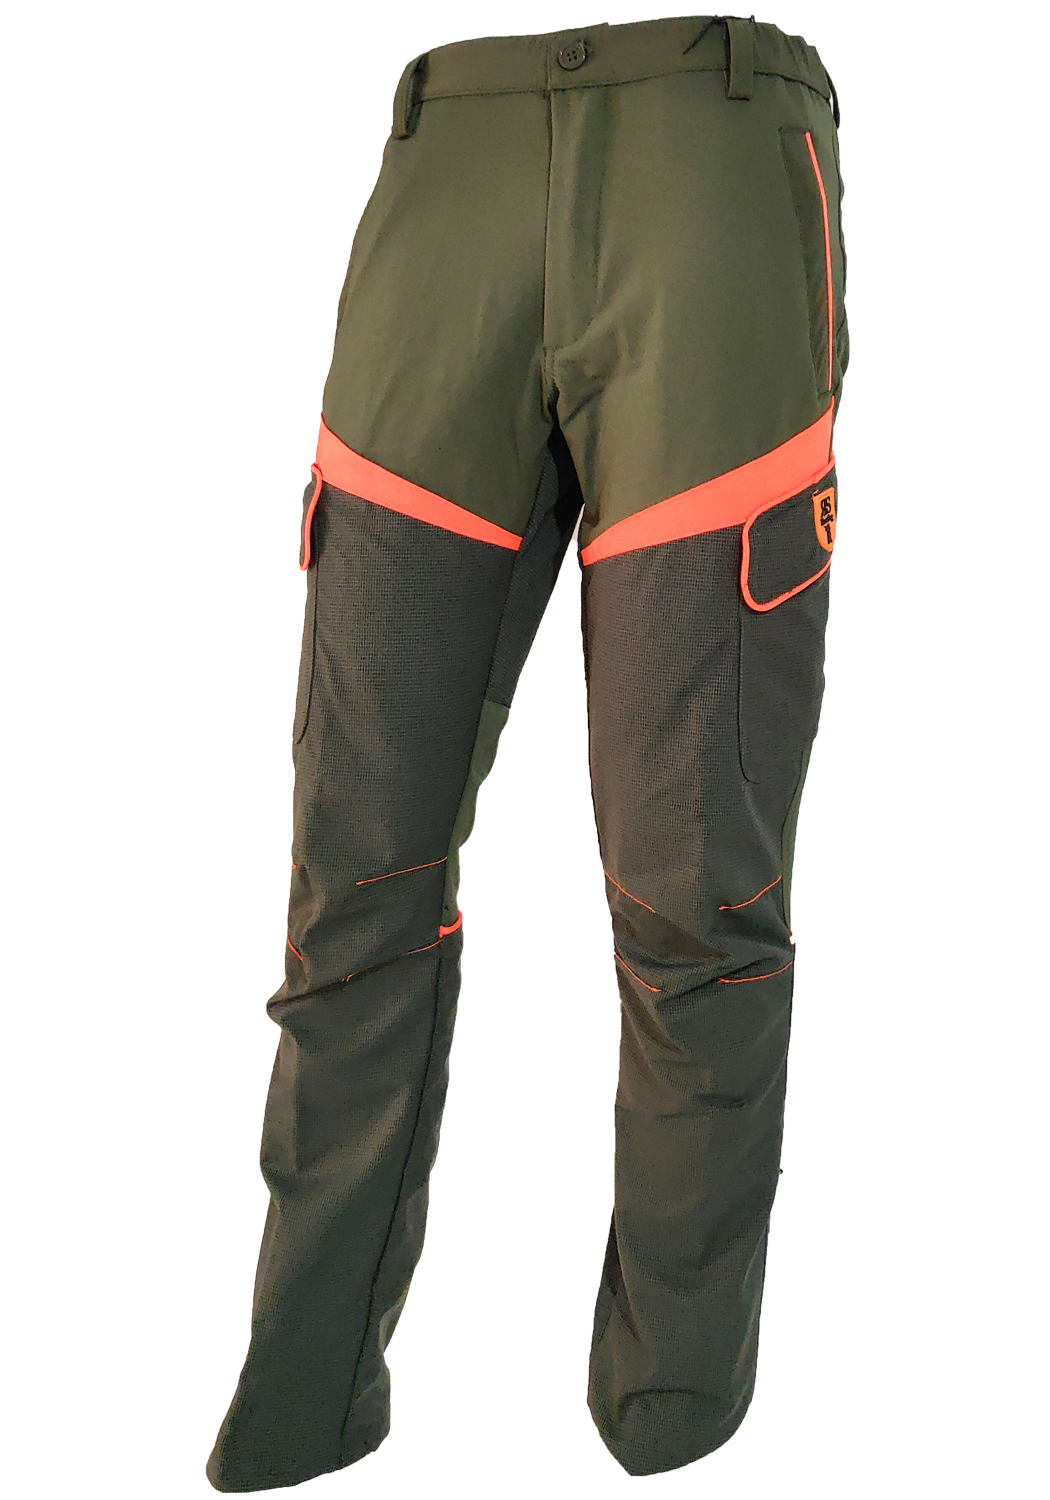 Pantalon stretch slim swaps orange kevlar imperméable homme